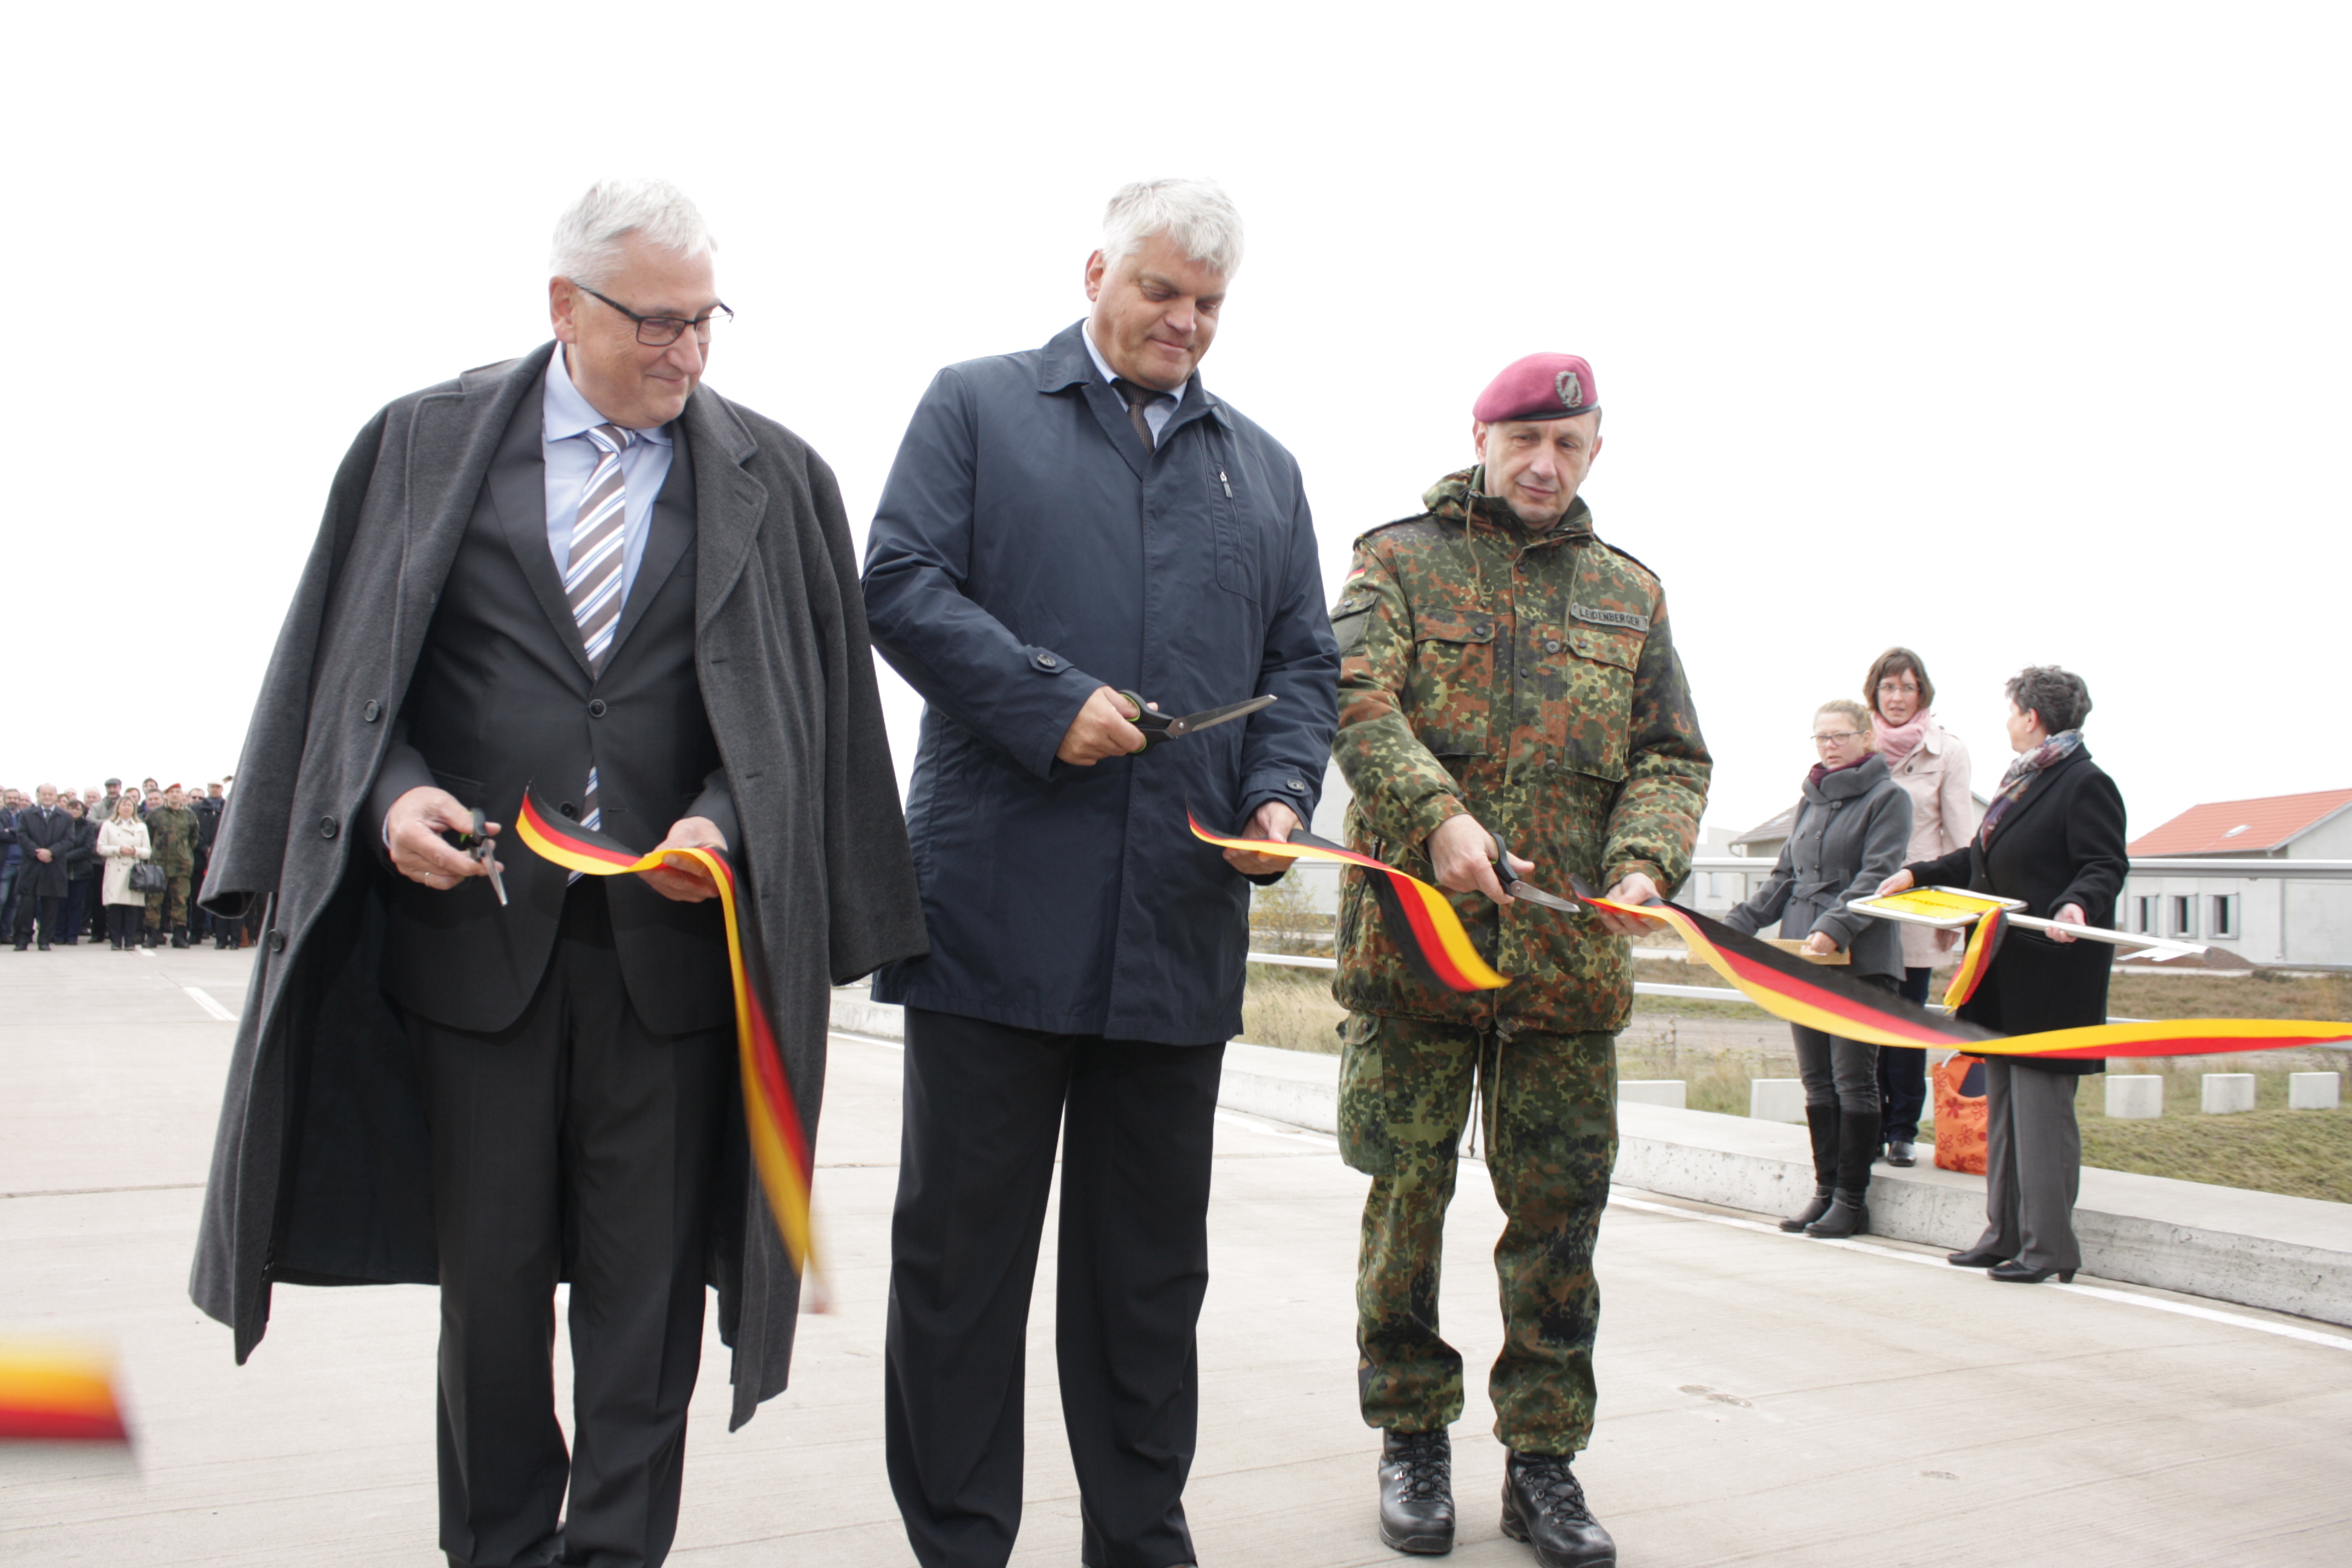 Inauguration ceremony with state Michael Richter, state secretary of Saxony-Anhalt, Markus Grübel state secretary MoD and lieutnant-general Frank Leidenberger, heaf of land forces innovation-department (from left to right).